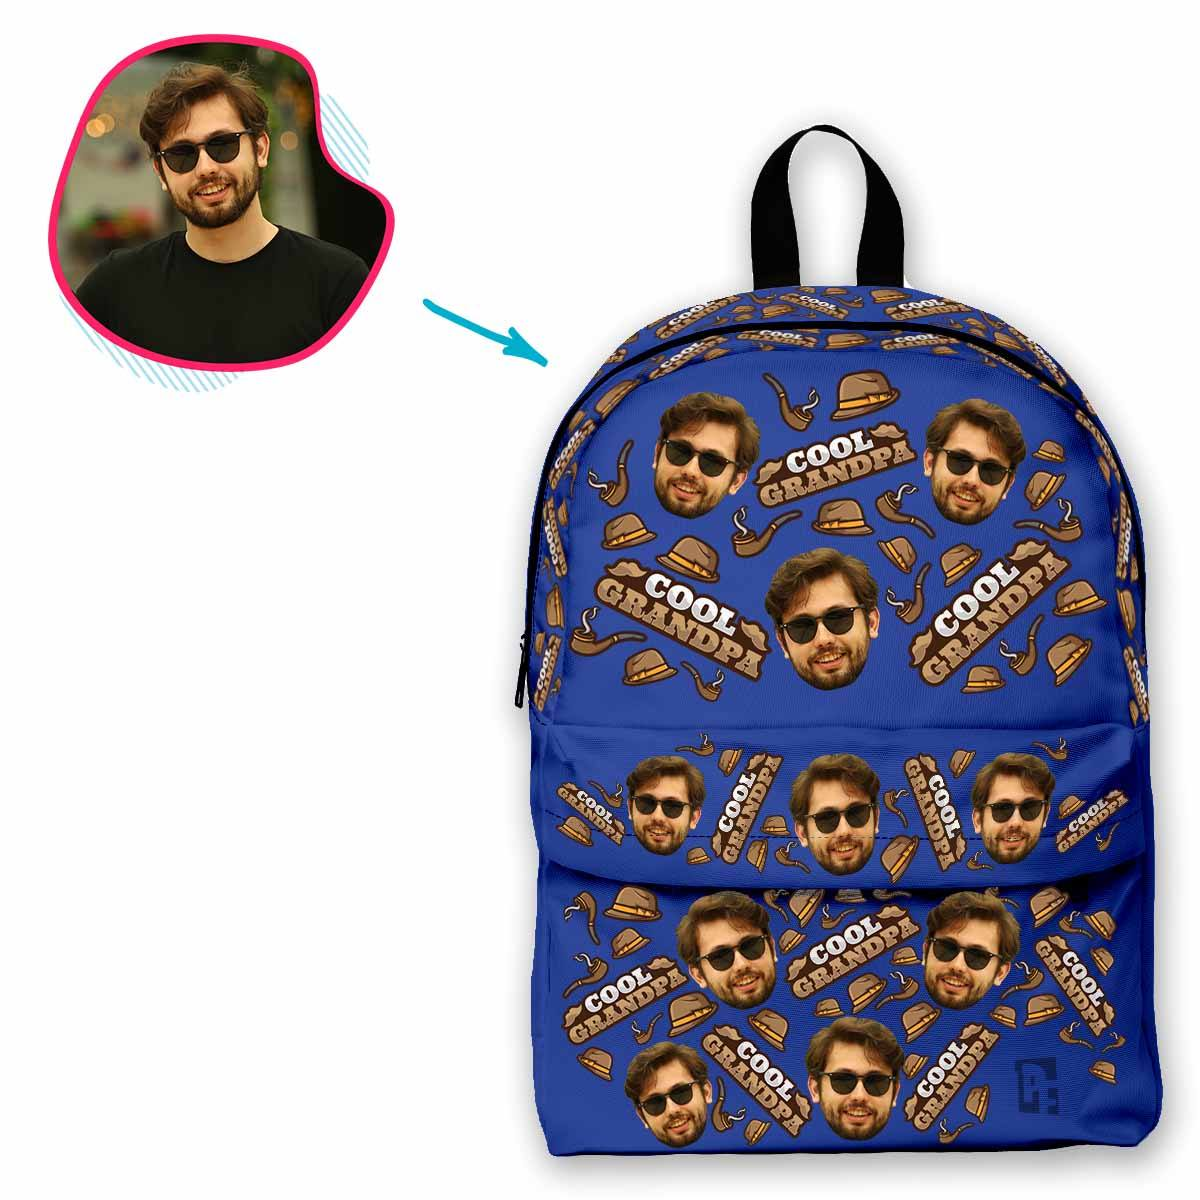 darkblue Cool Grandfather classic backpack personalized with photo of face printed on it